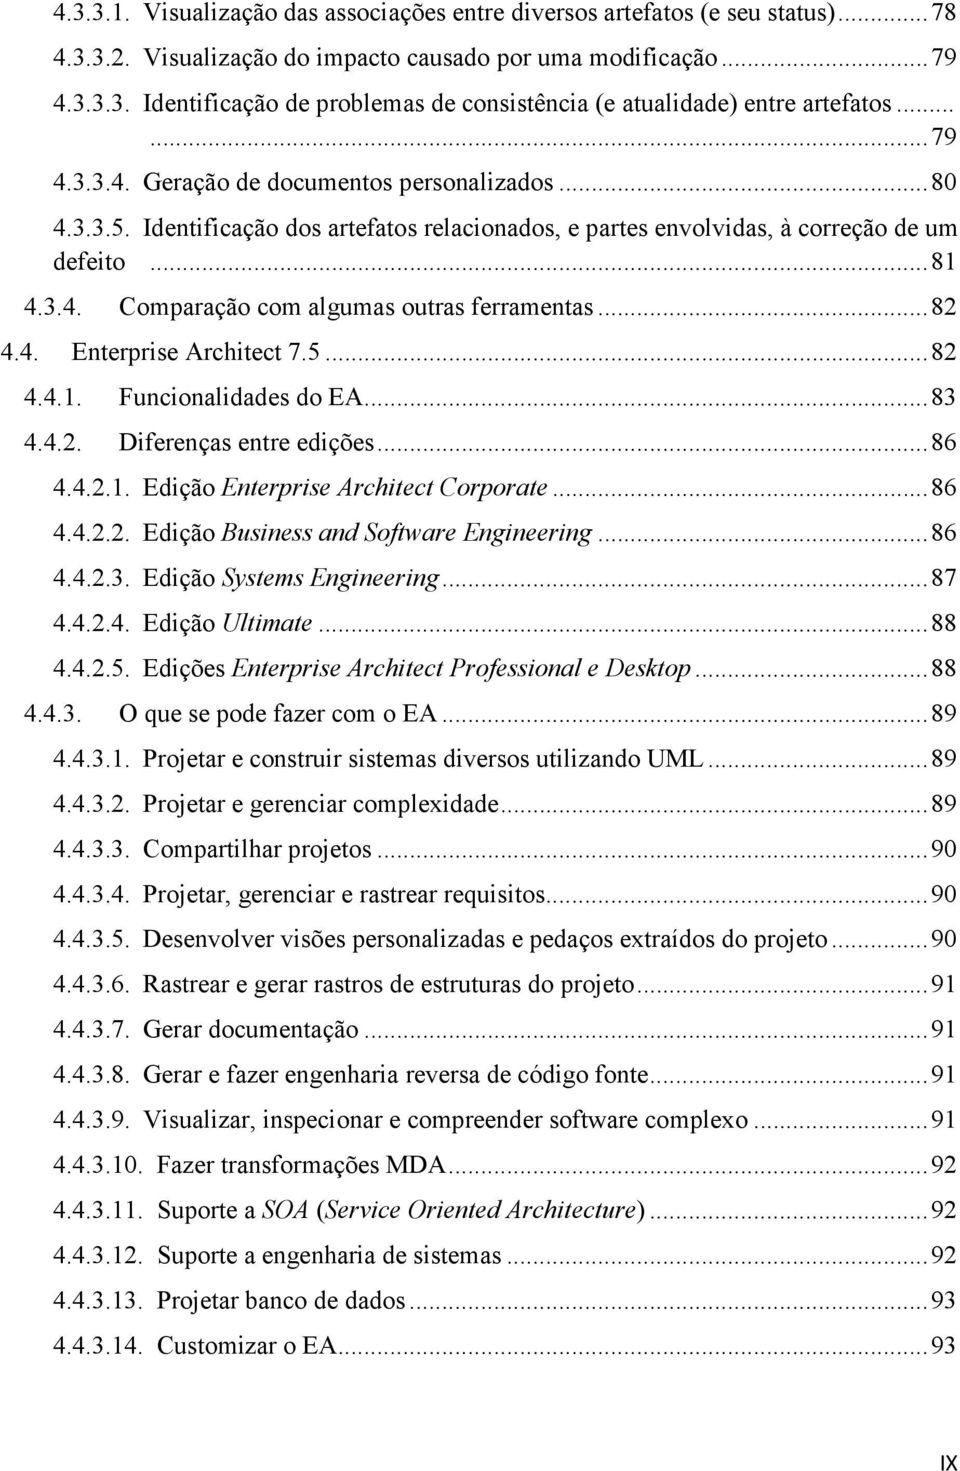 .. 82 4.4. Enterprise Architect 7.5... 82 4.4.1. Funcionalidades do EA... 83 4.4.2. Diferenças entre edições... 86 4.4.2.1. Edição Enterprise Architect Corporate... 86 4.4.2.2. Edição Business and Software Engineering.